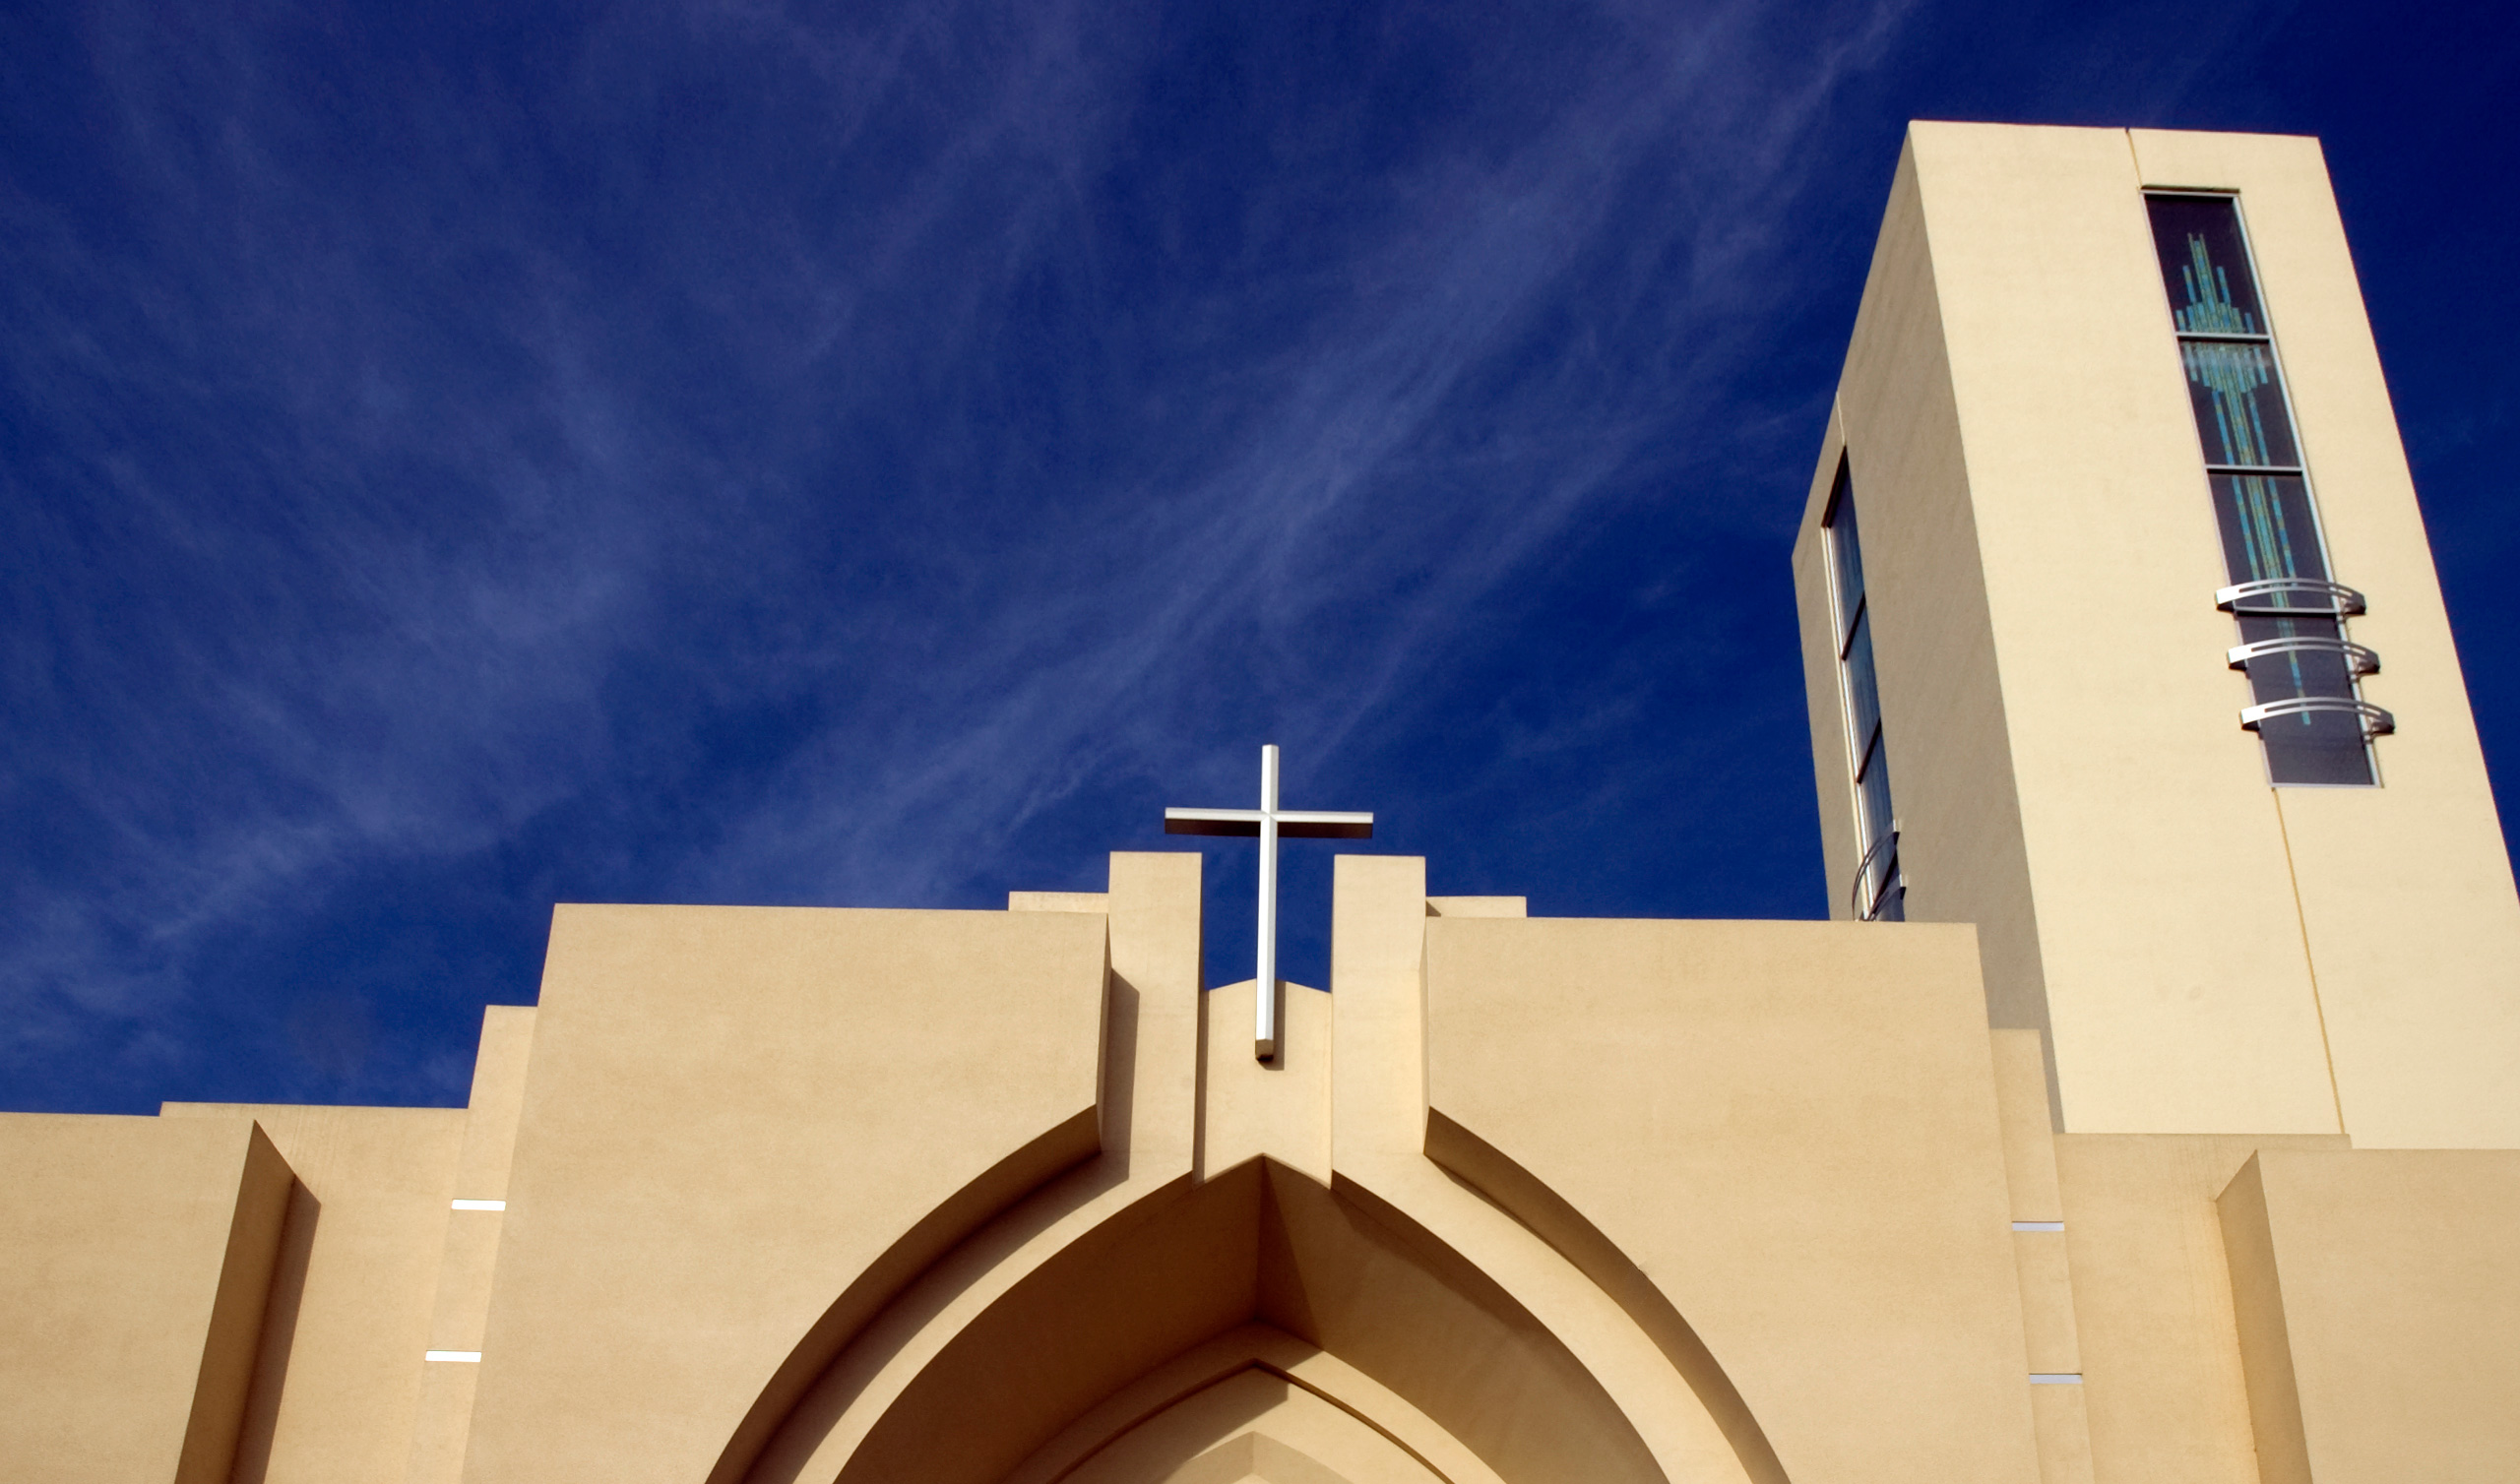 Loma Linda University Church